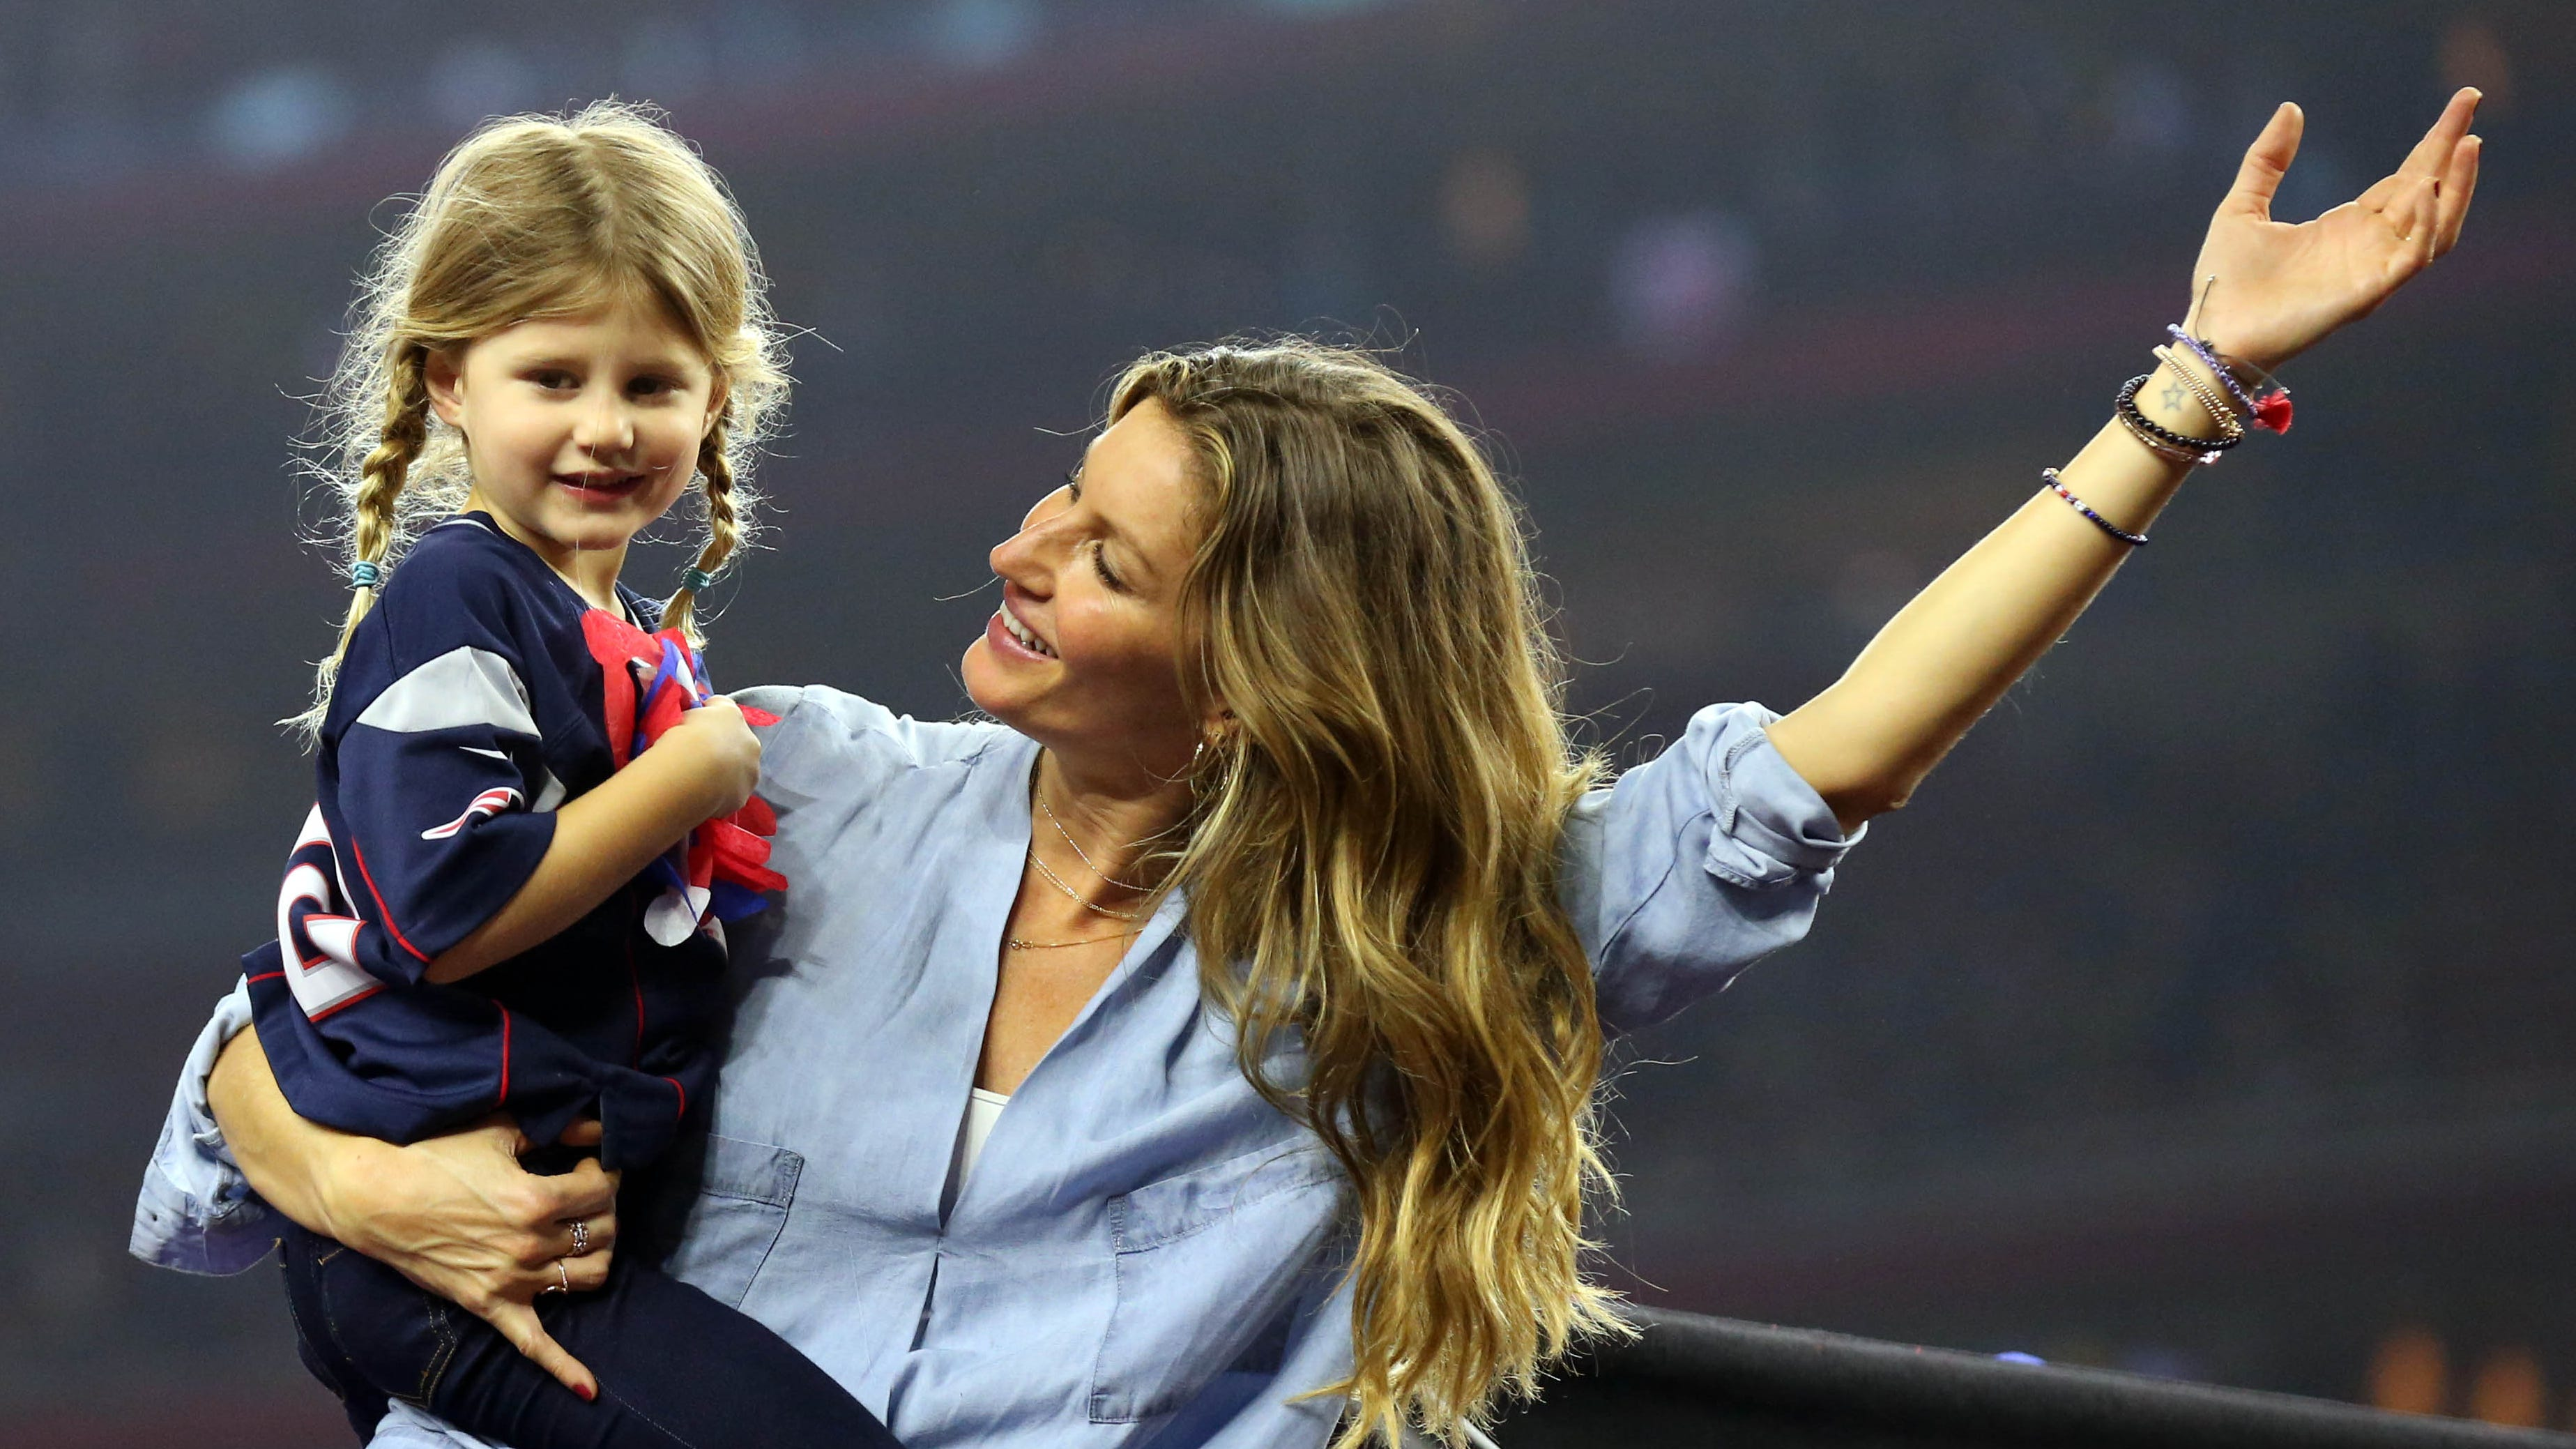 Gisele Bündchen can't hide excitement during Disney World trip with her kids